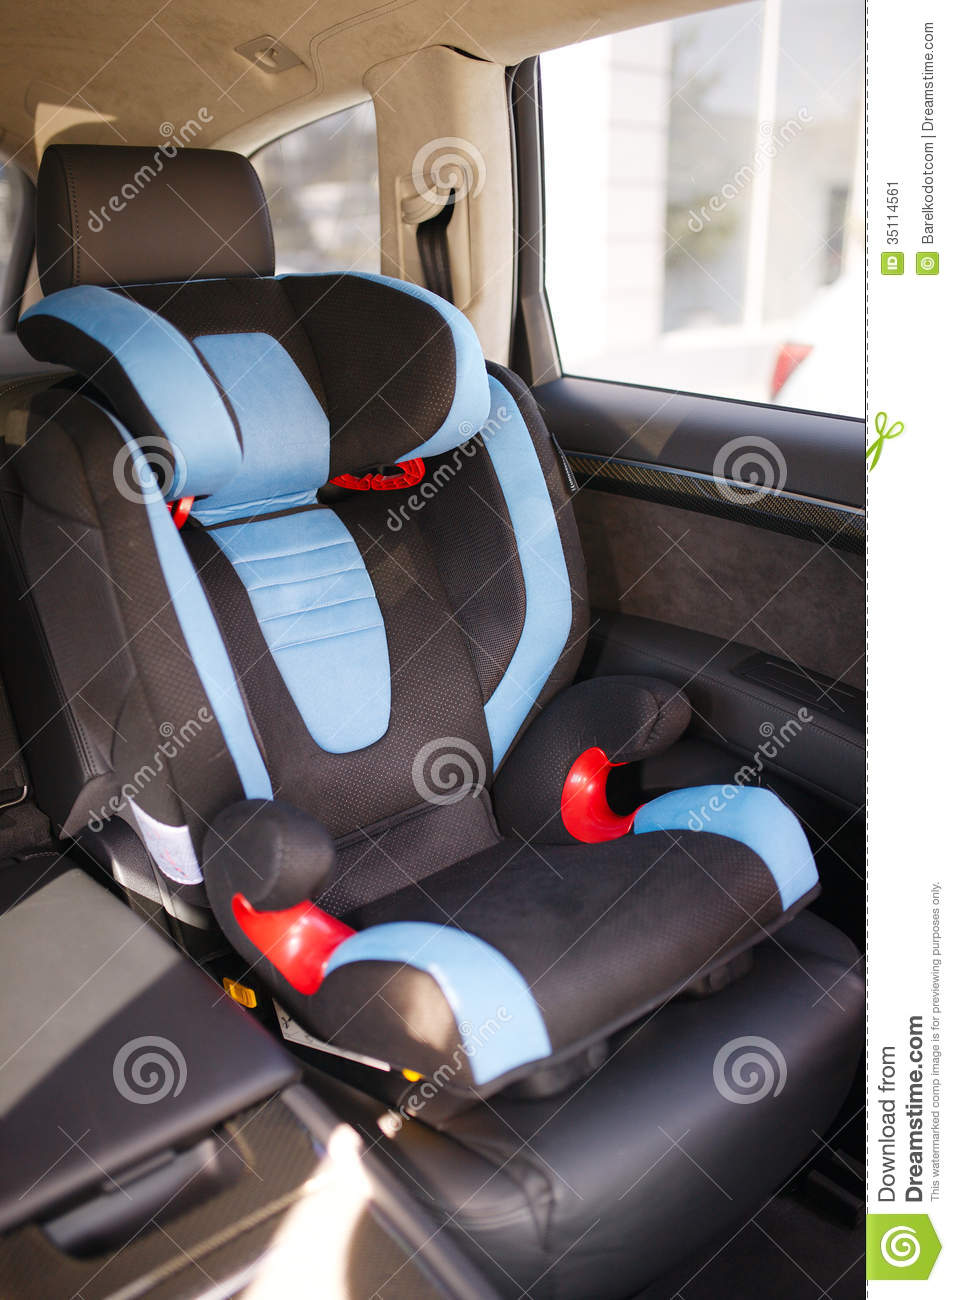 baby car seat stock image image of person automobile 35114561. Black Bedroom Furniture Sets. Home Design Ideas